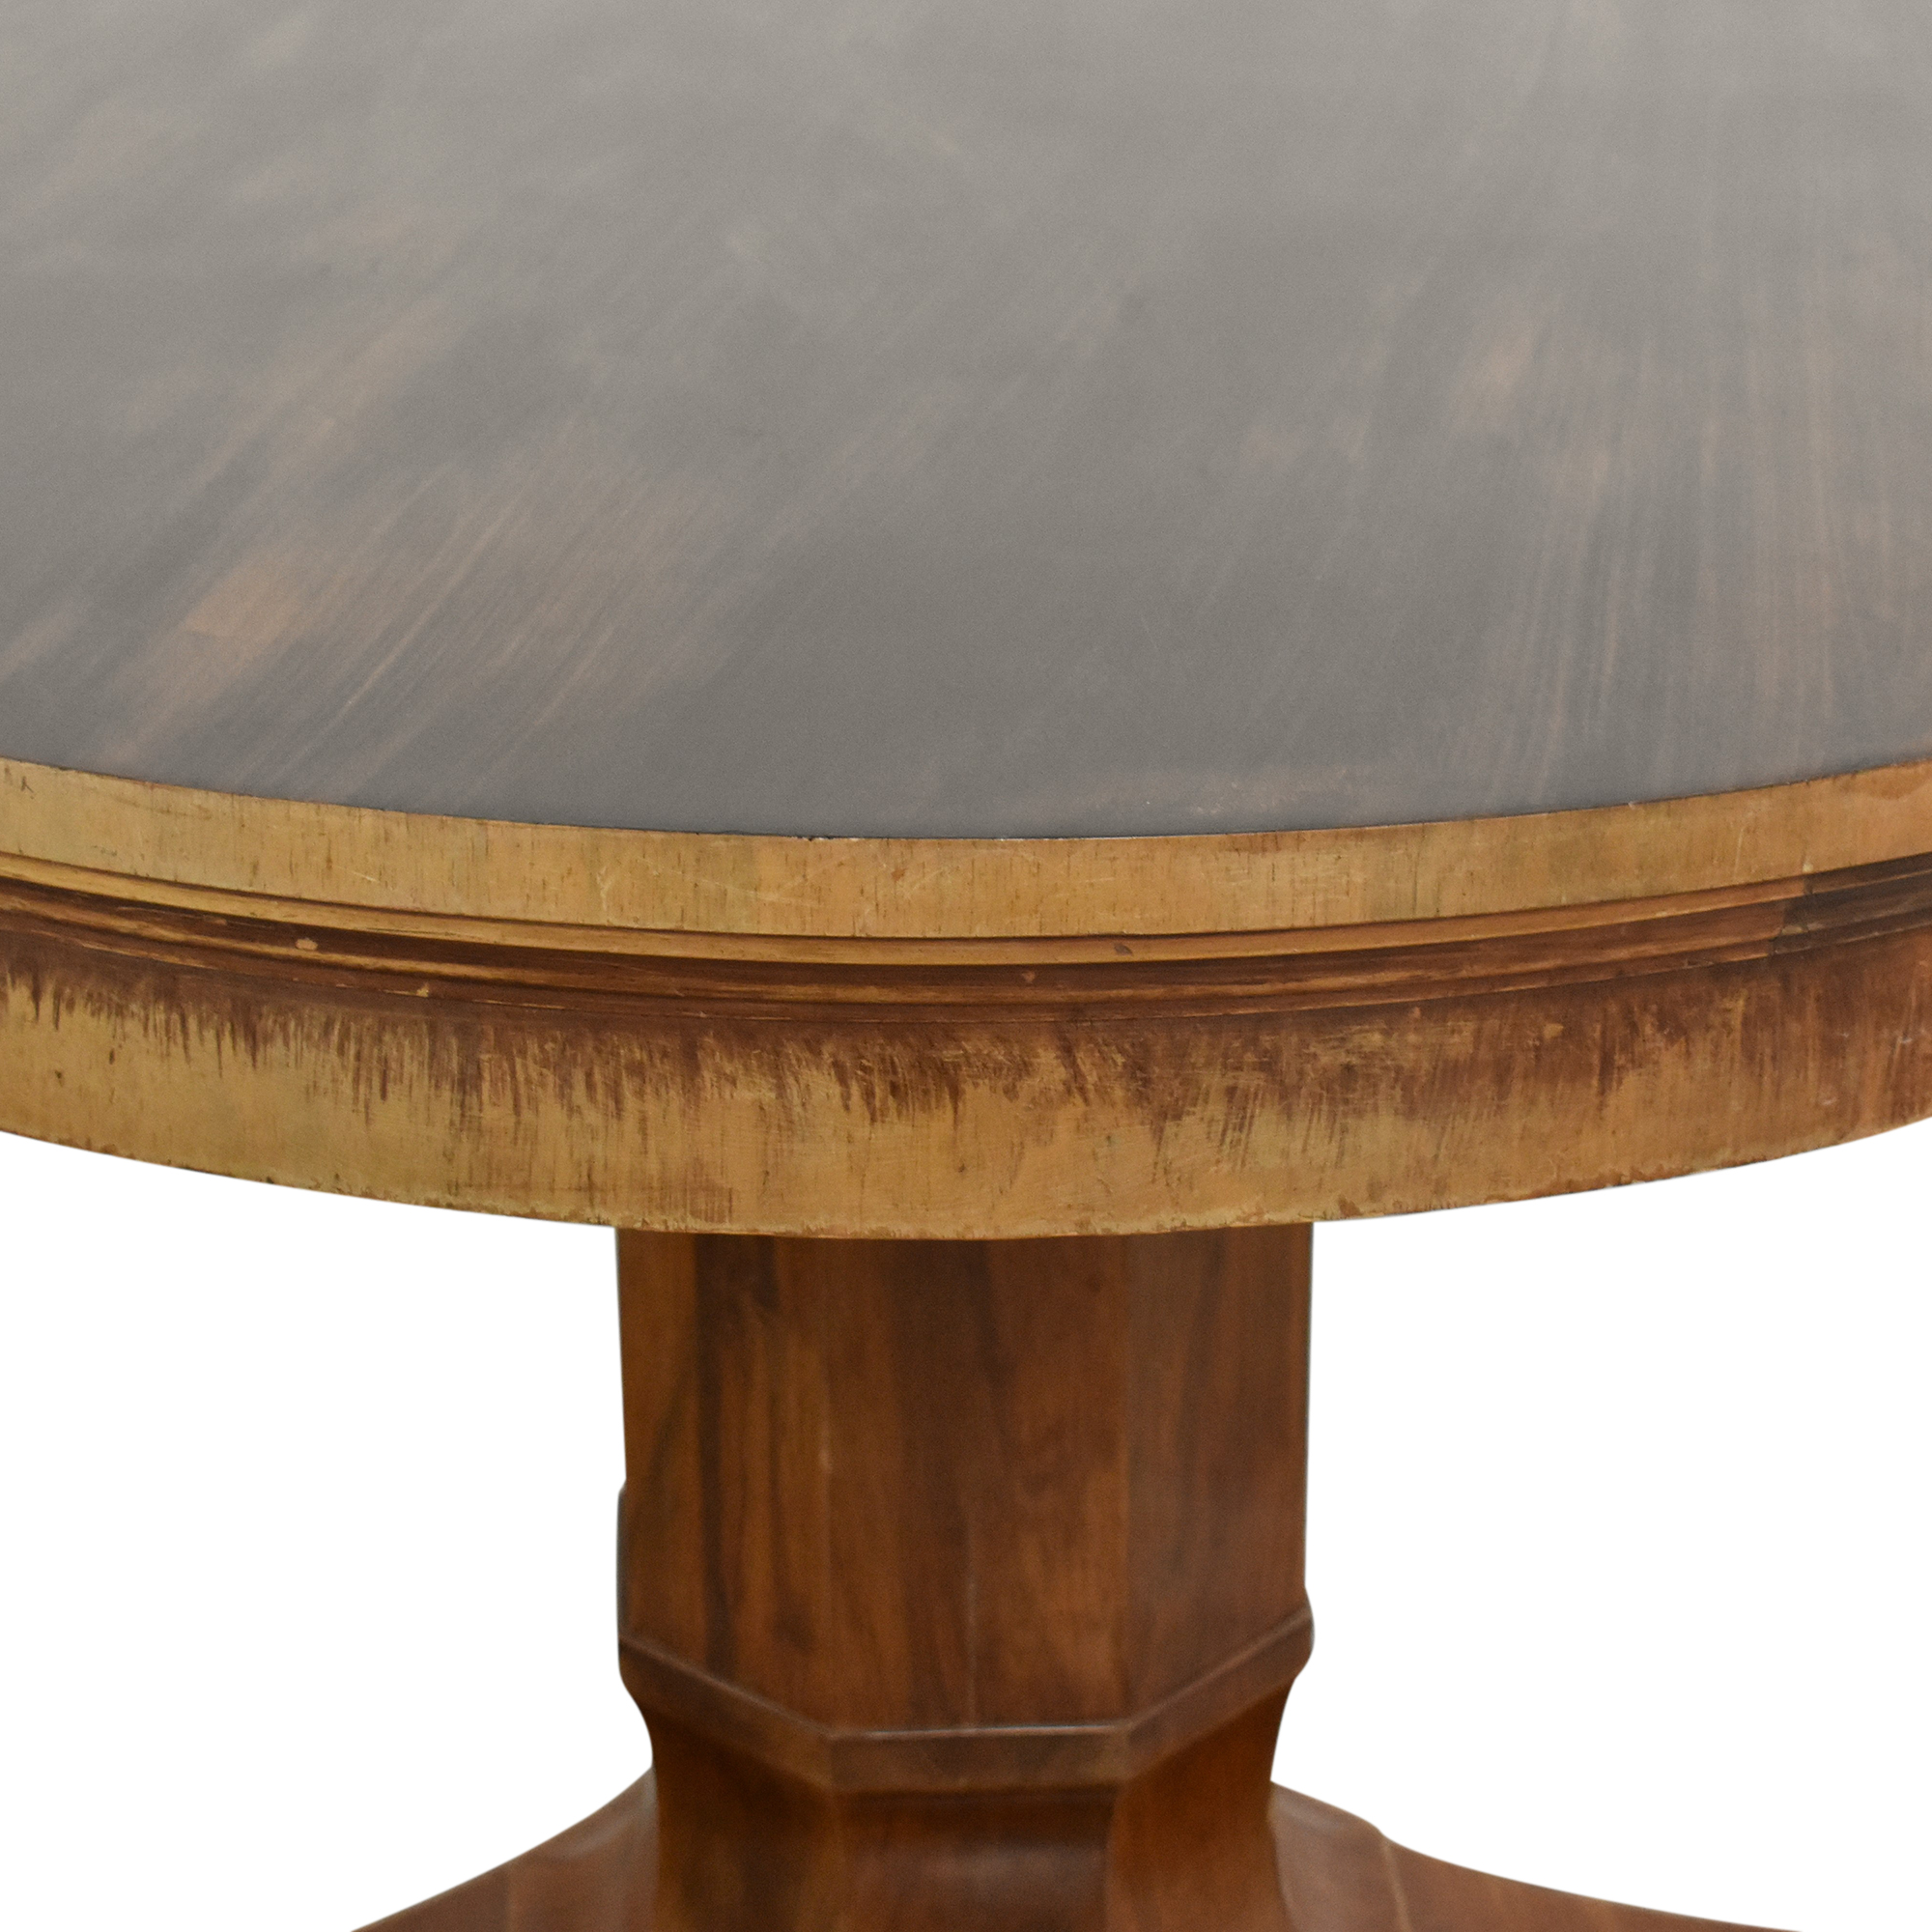 Antique Round Pedestal Table ma